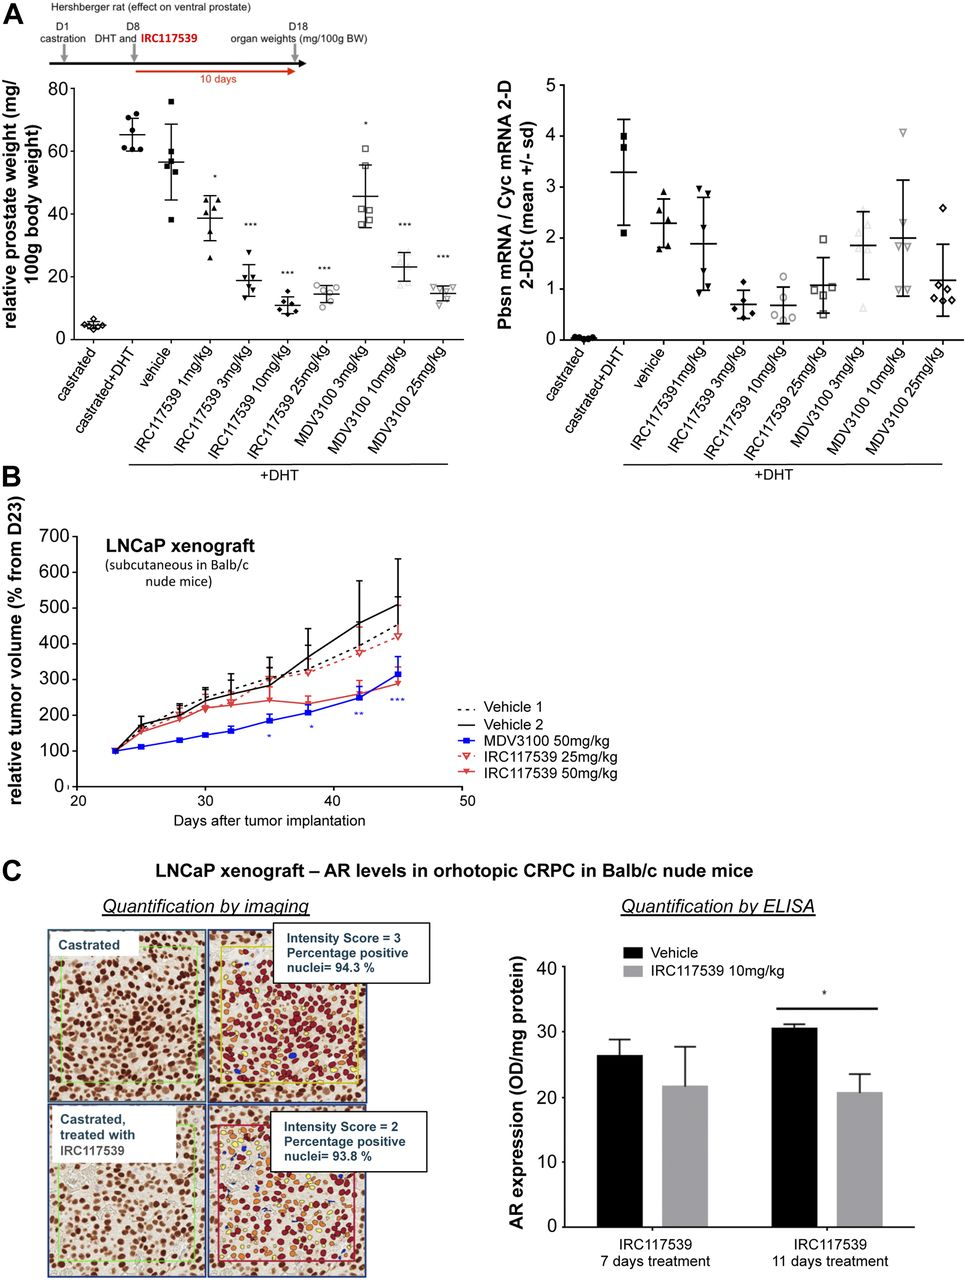 A molecule inducing androgen receptor degradation and